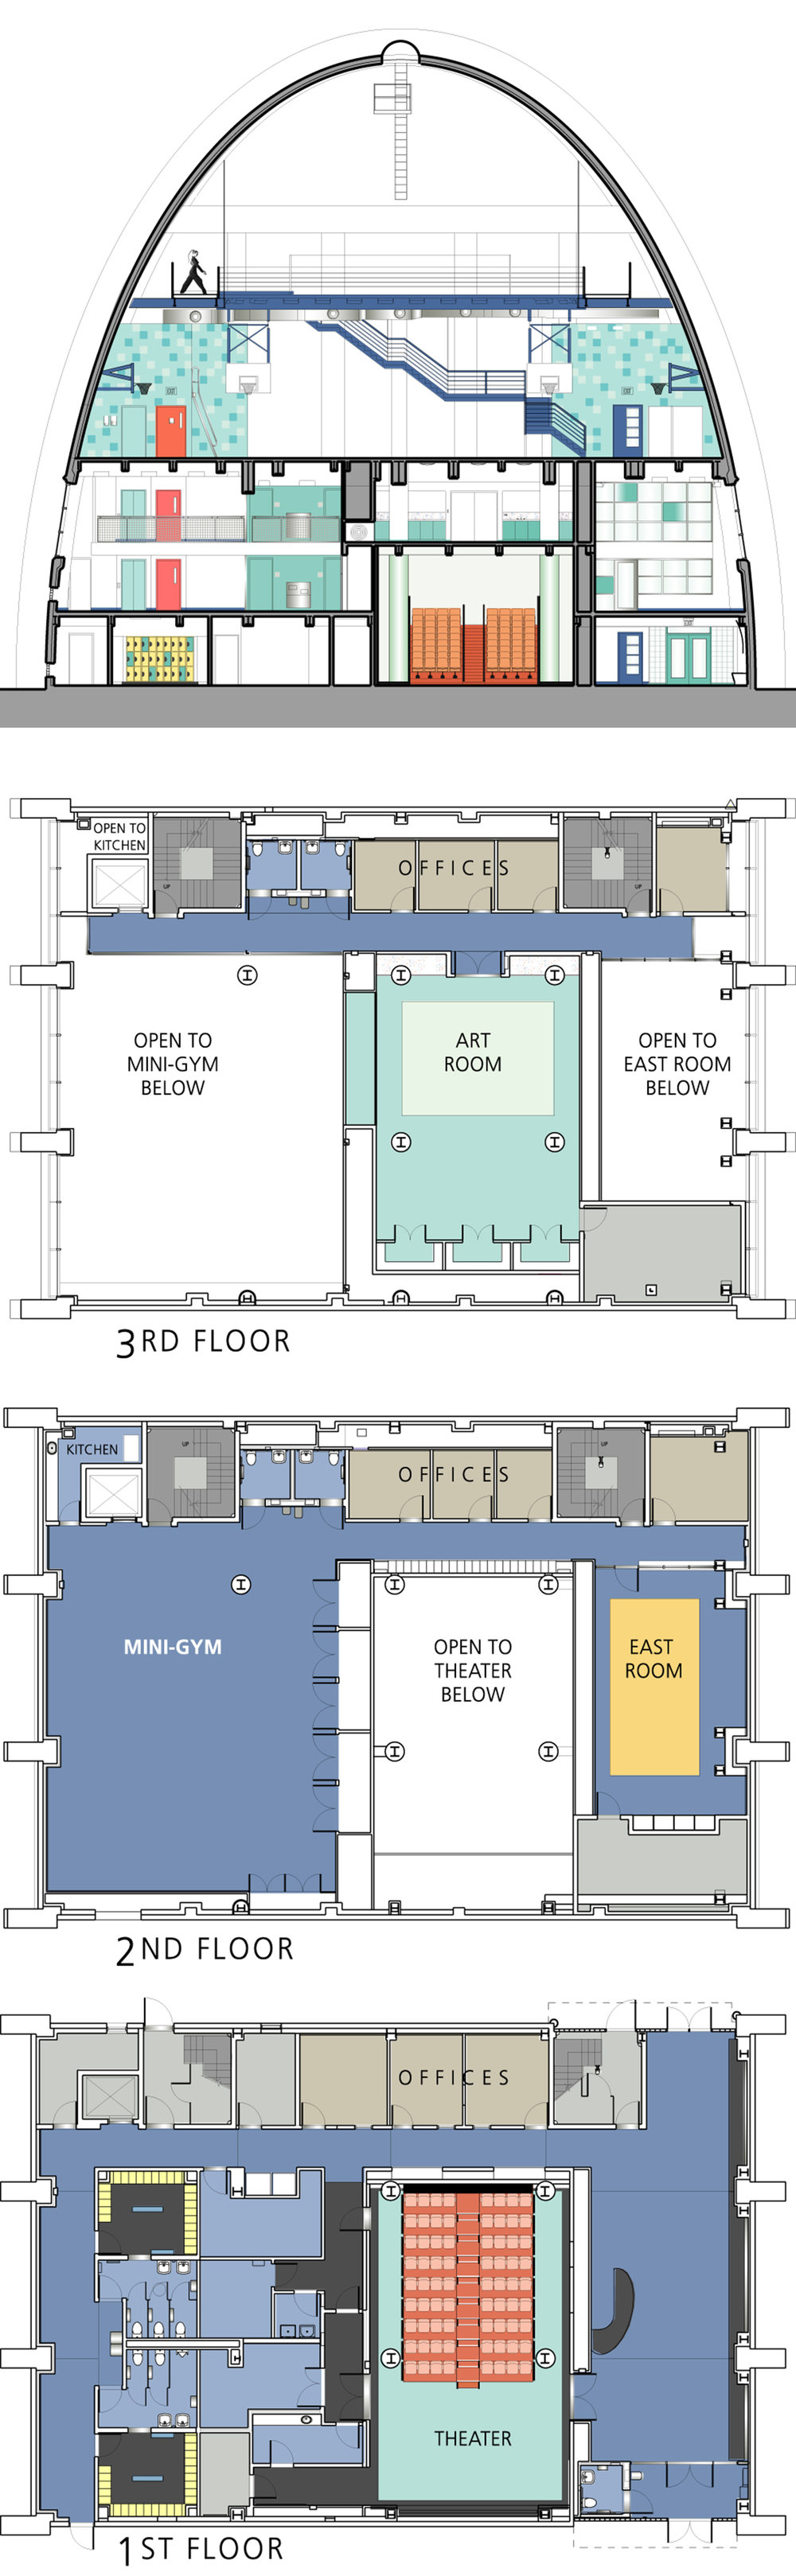 Building section; floor plans